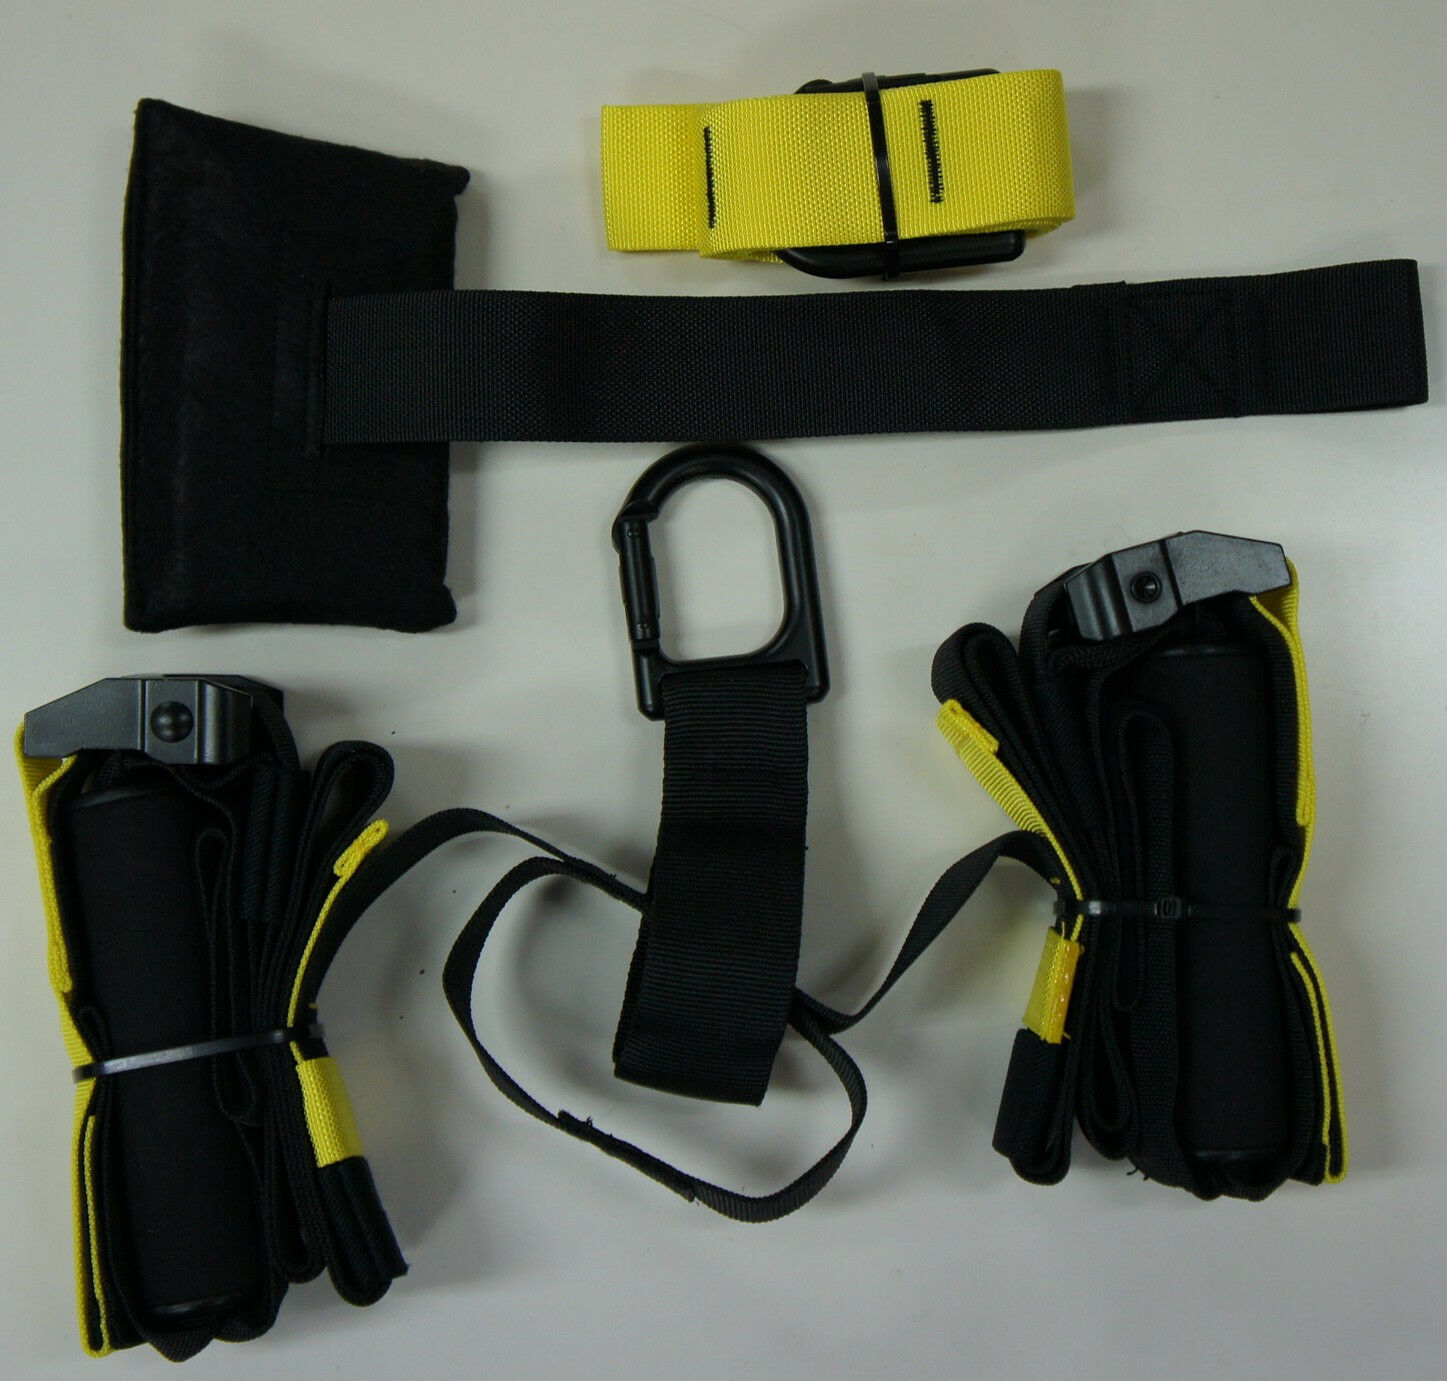 High Quality Basic Suspension Training Bodyweight Exercise System, Same Same Same as TRX a8555b